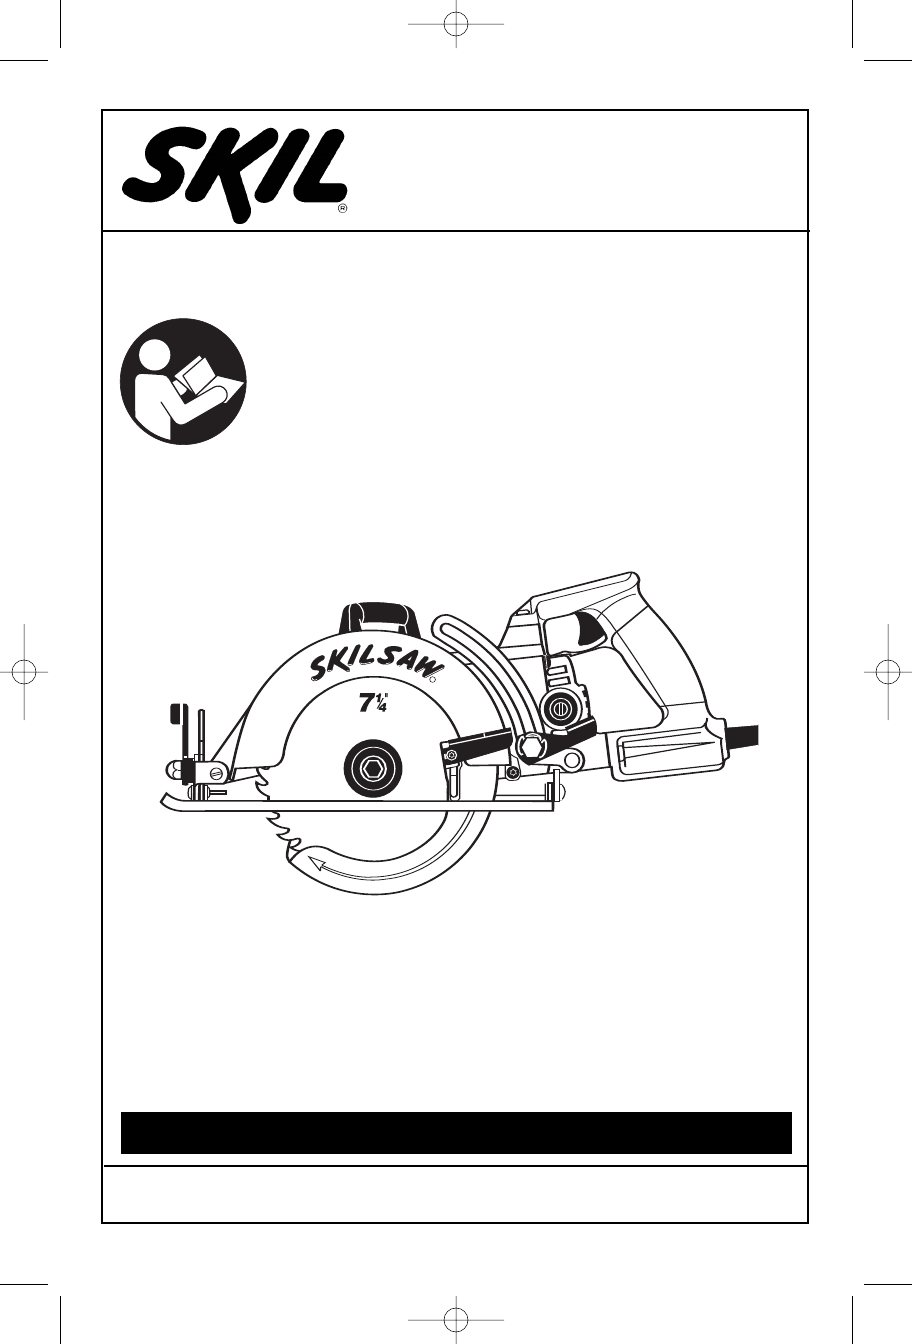 Skil saw hd77 user guide manualsonline greentooth Images